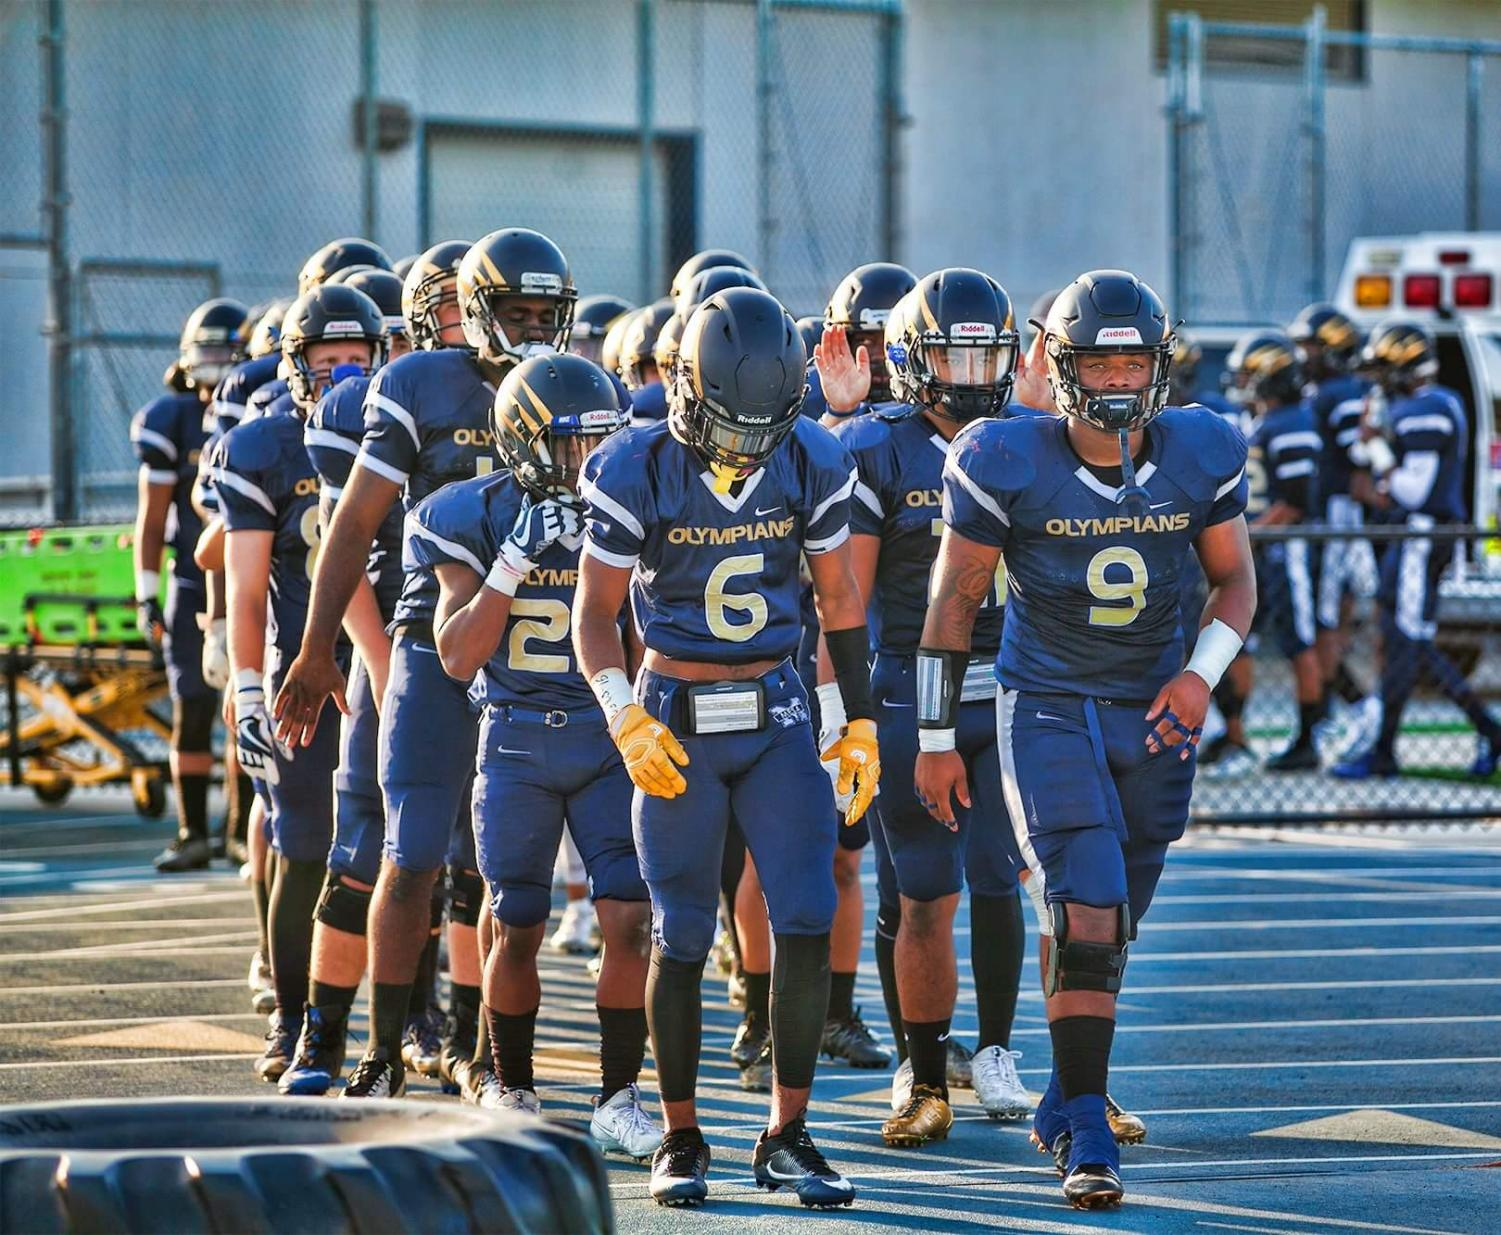 Our Olympian Football Team heading into battle this past Saturday. Photo Credit: Harmony Ayala-Ruiz